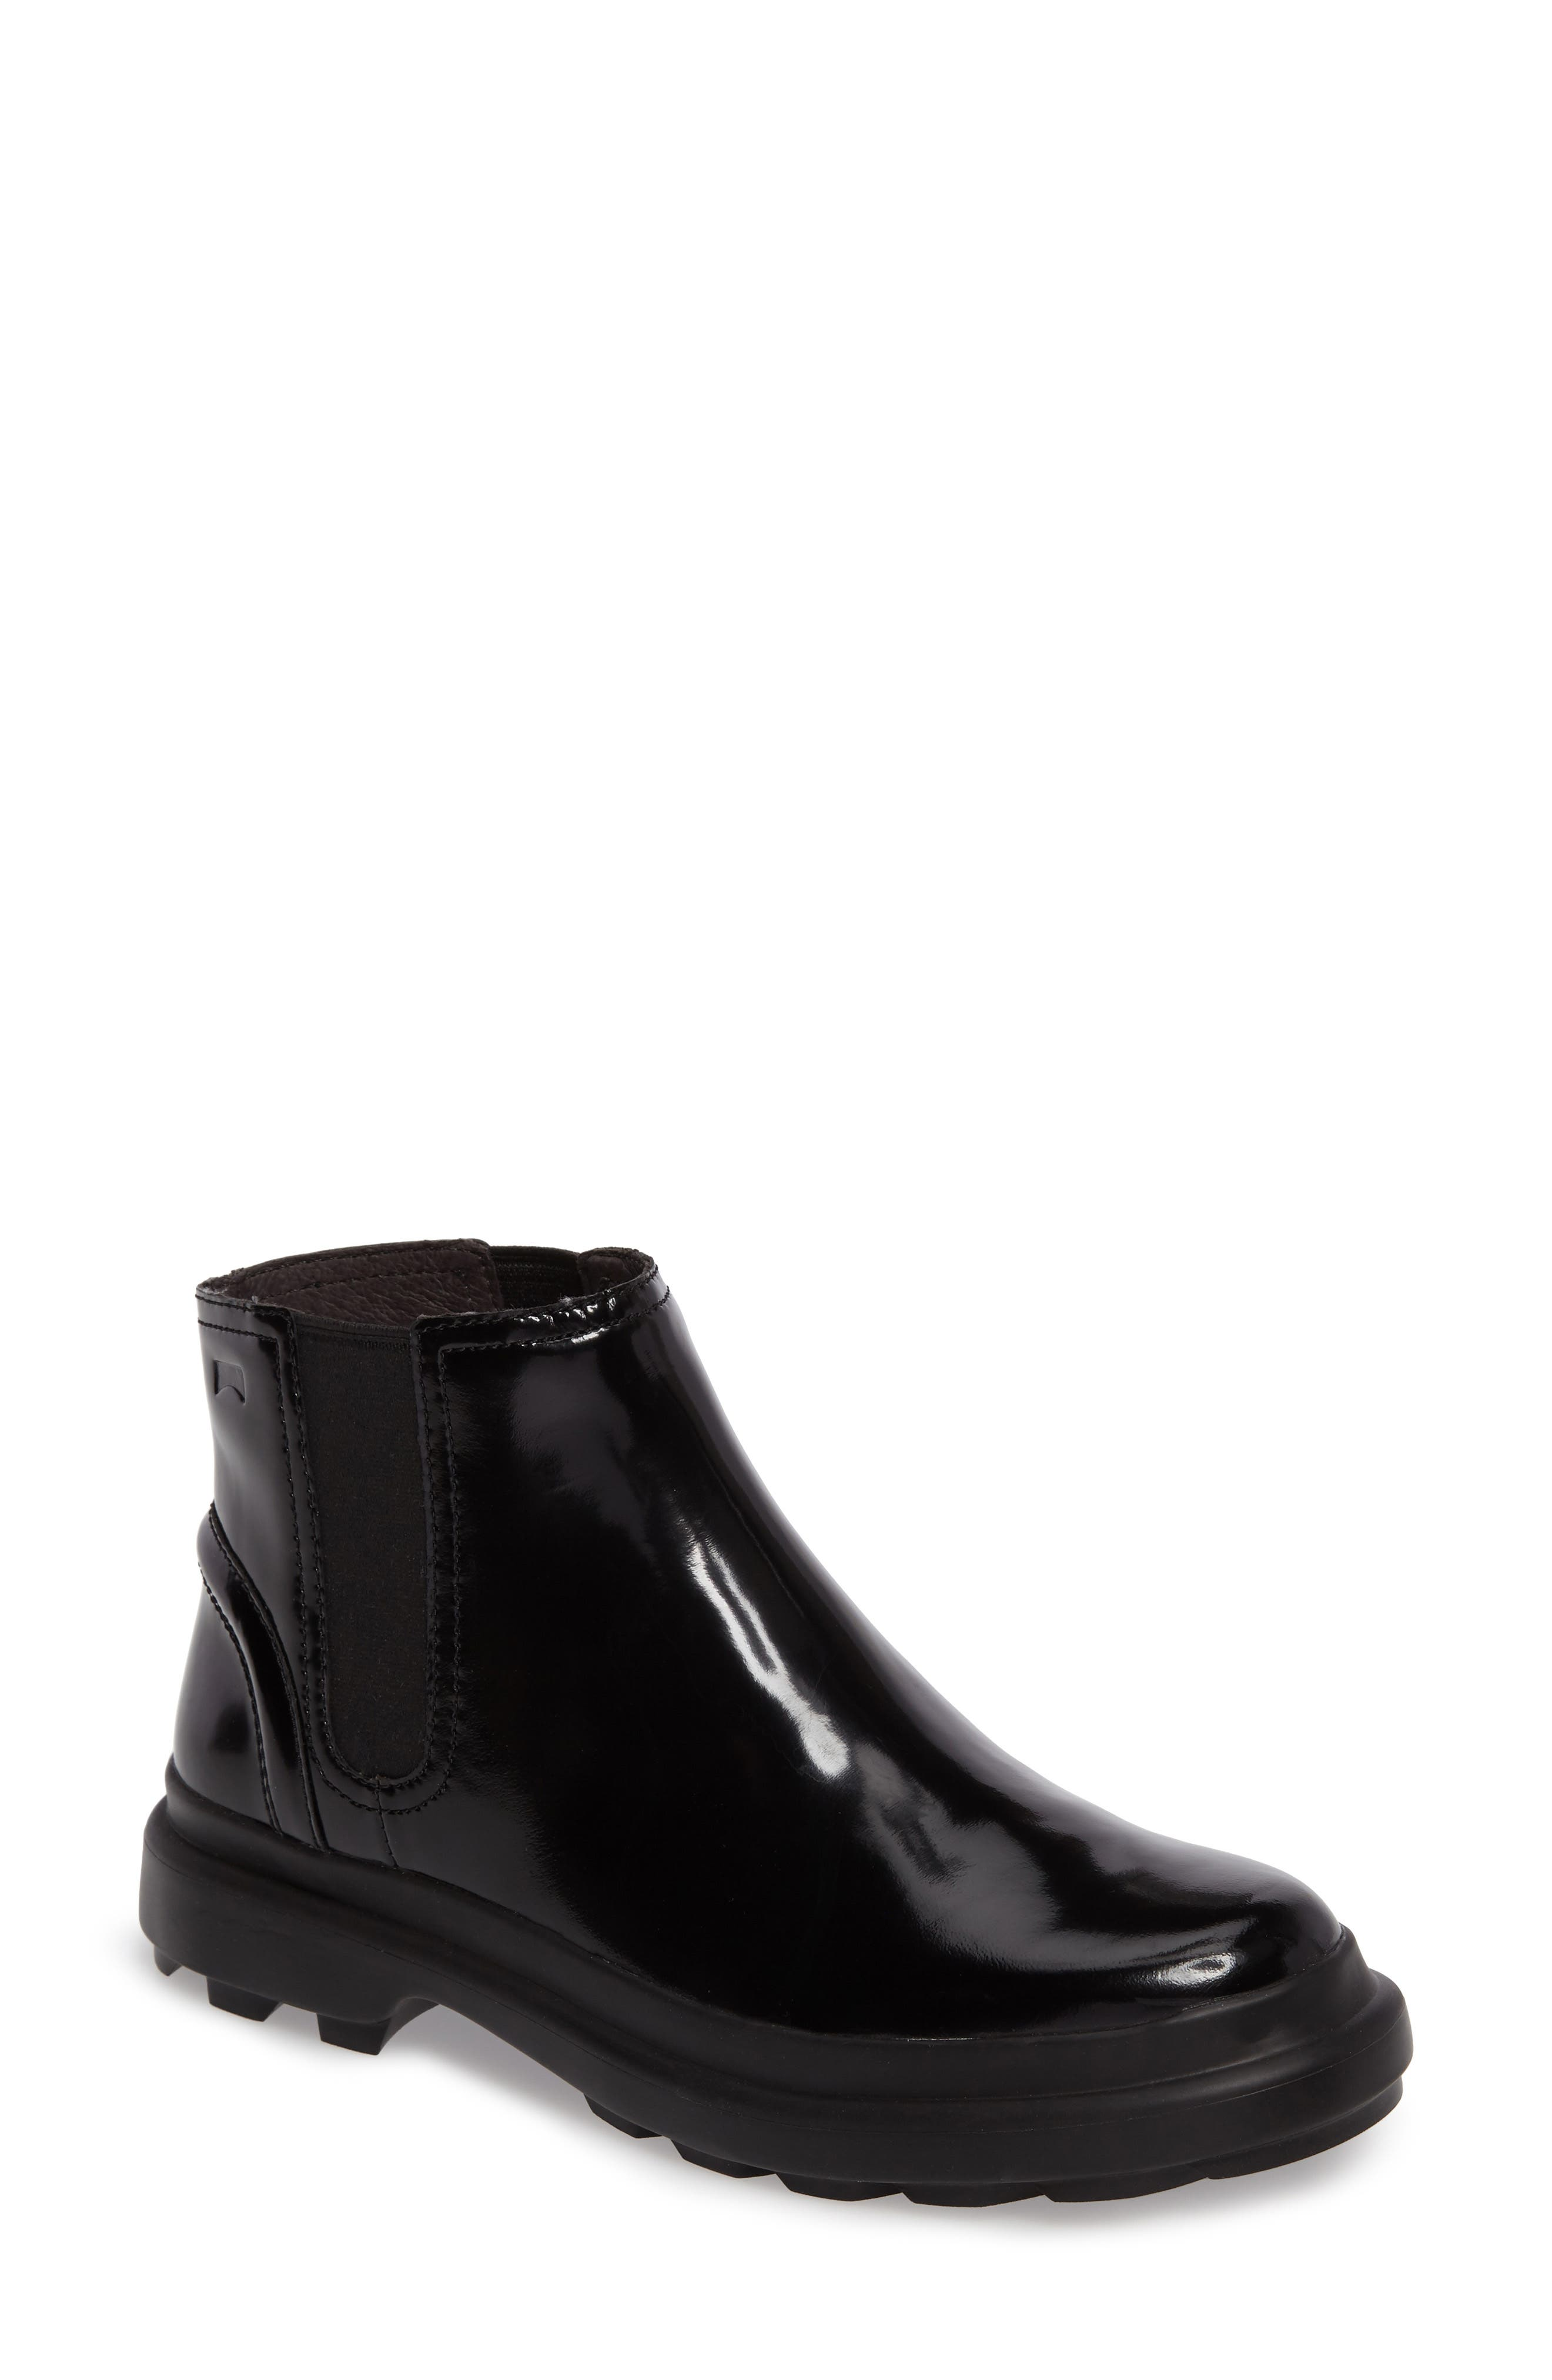 Turtle Lugged Chelsea Boot,                         Main,                         color, 001